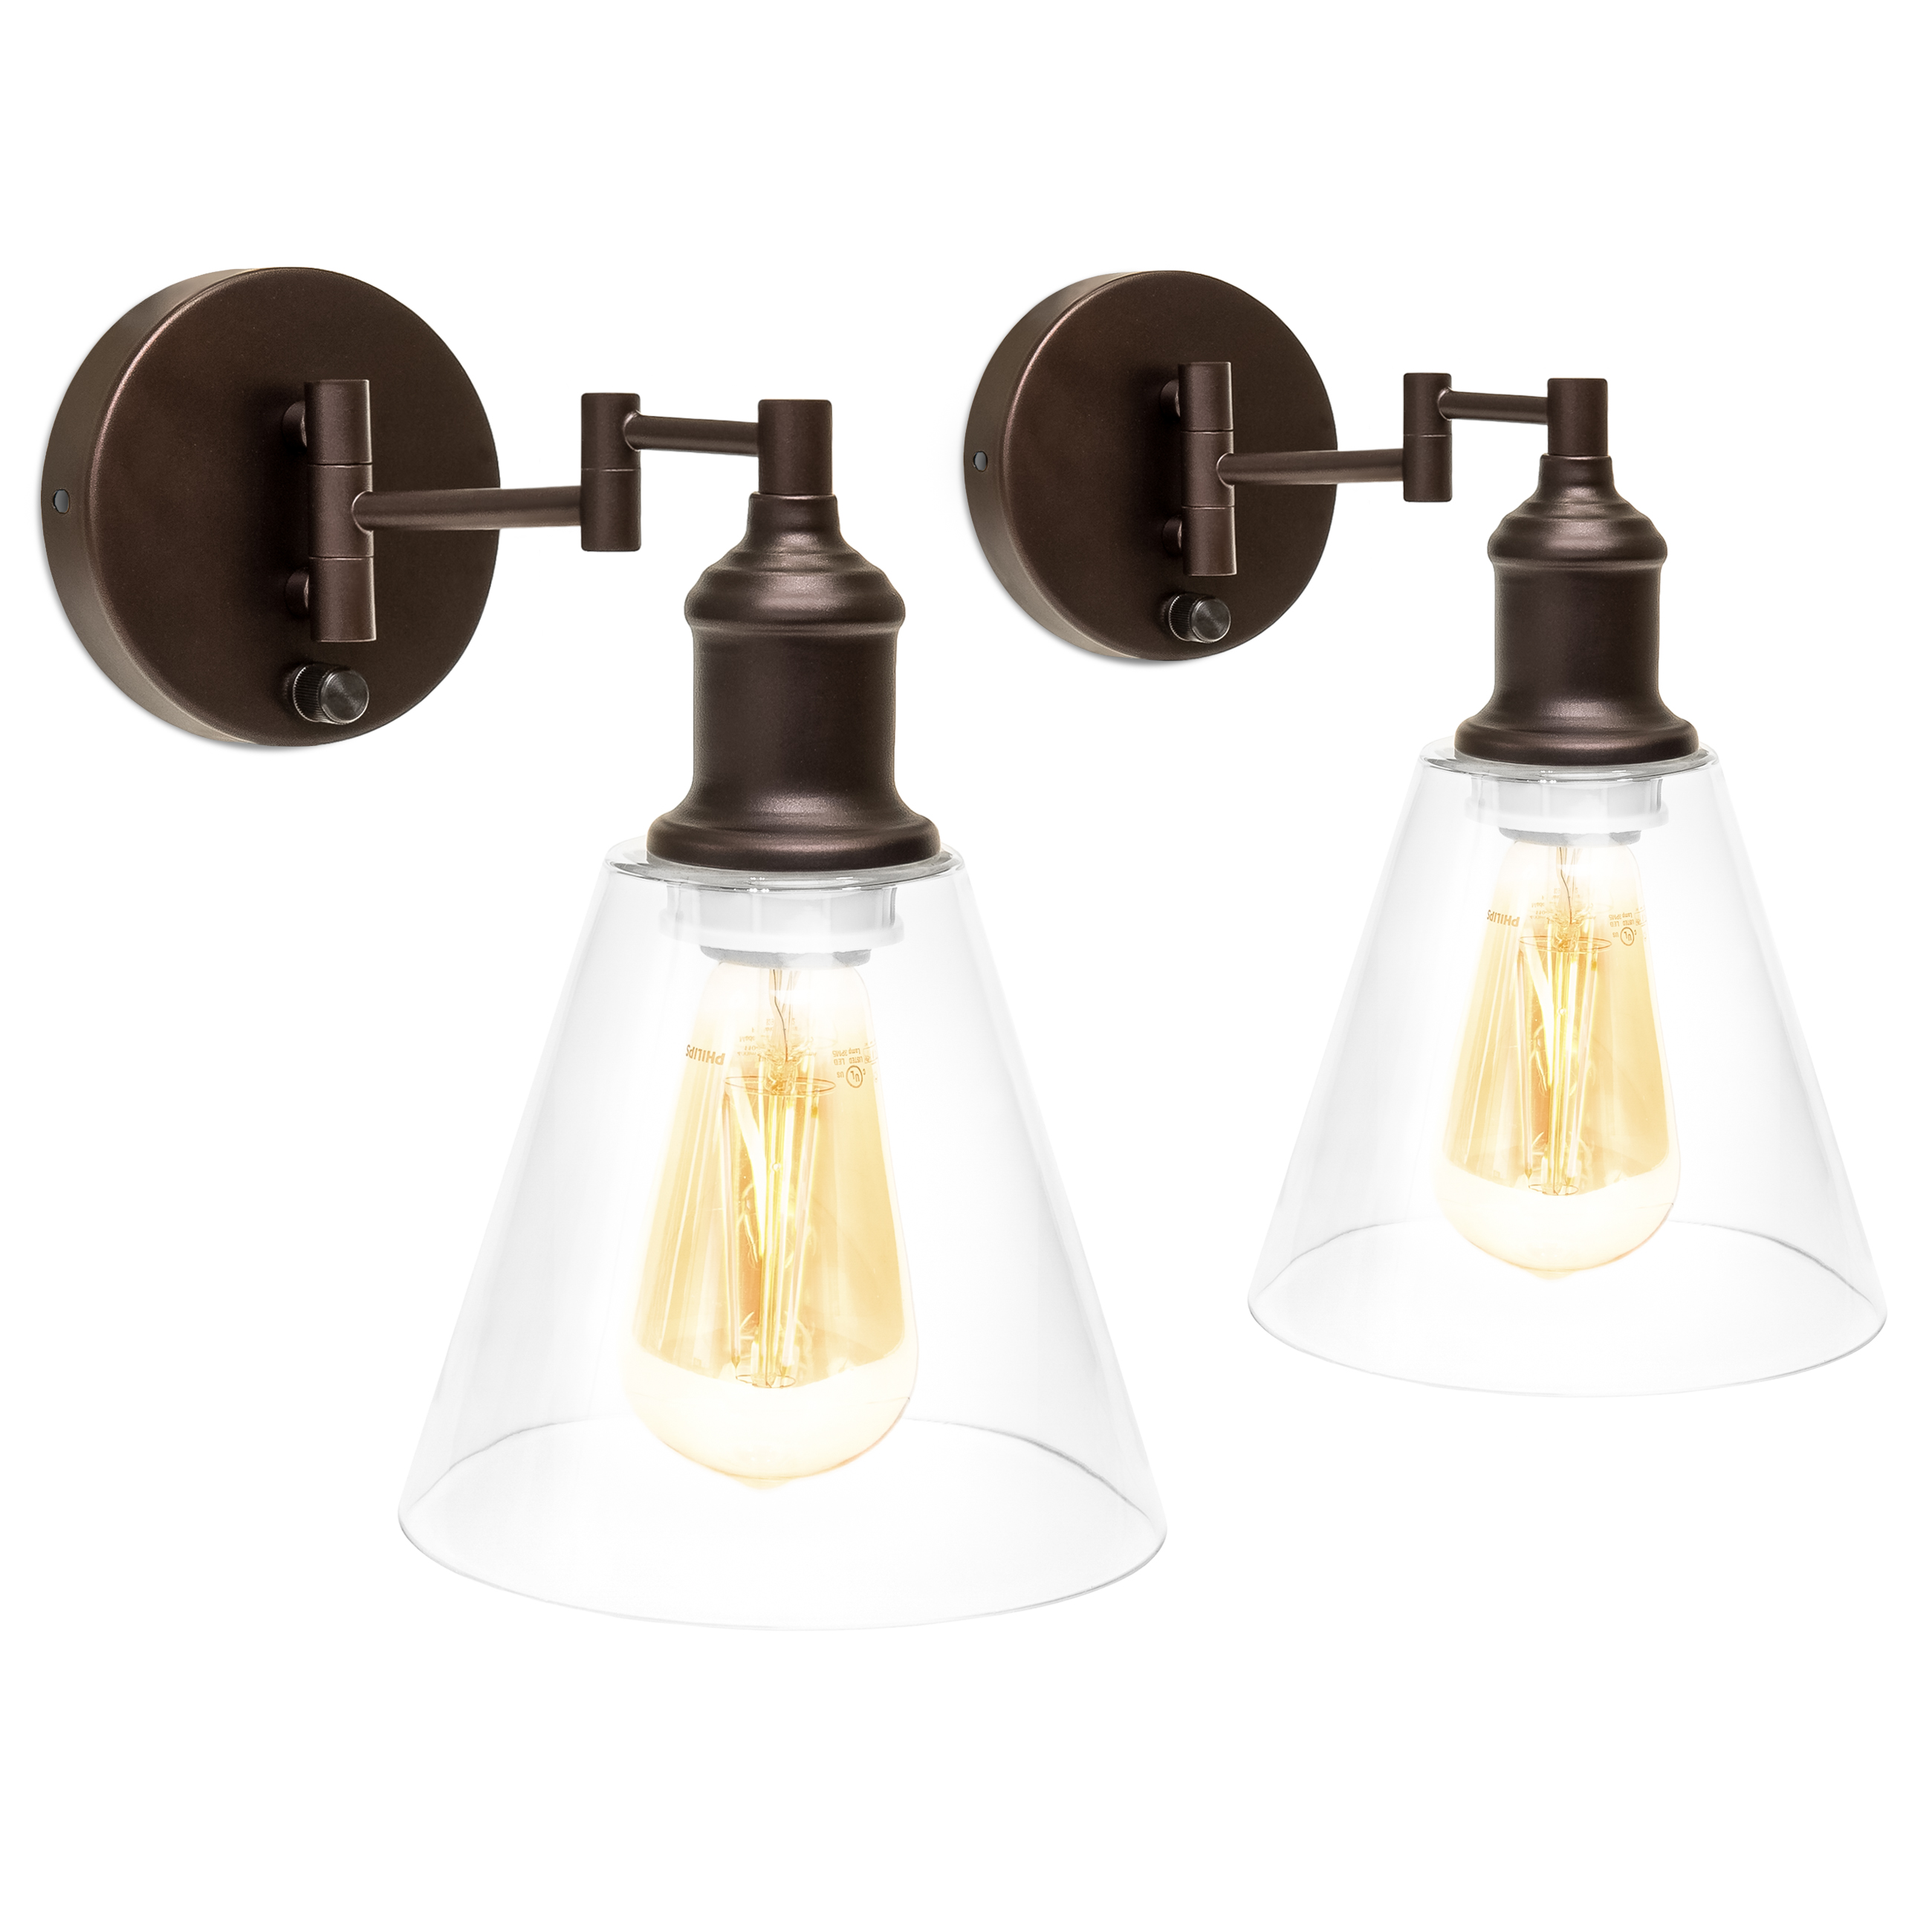 Lighting lighting fixtures walmart com